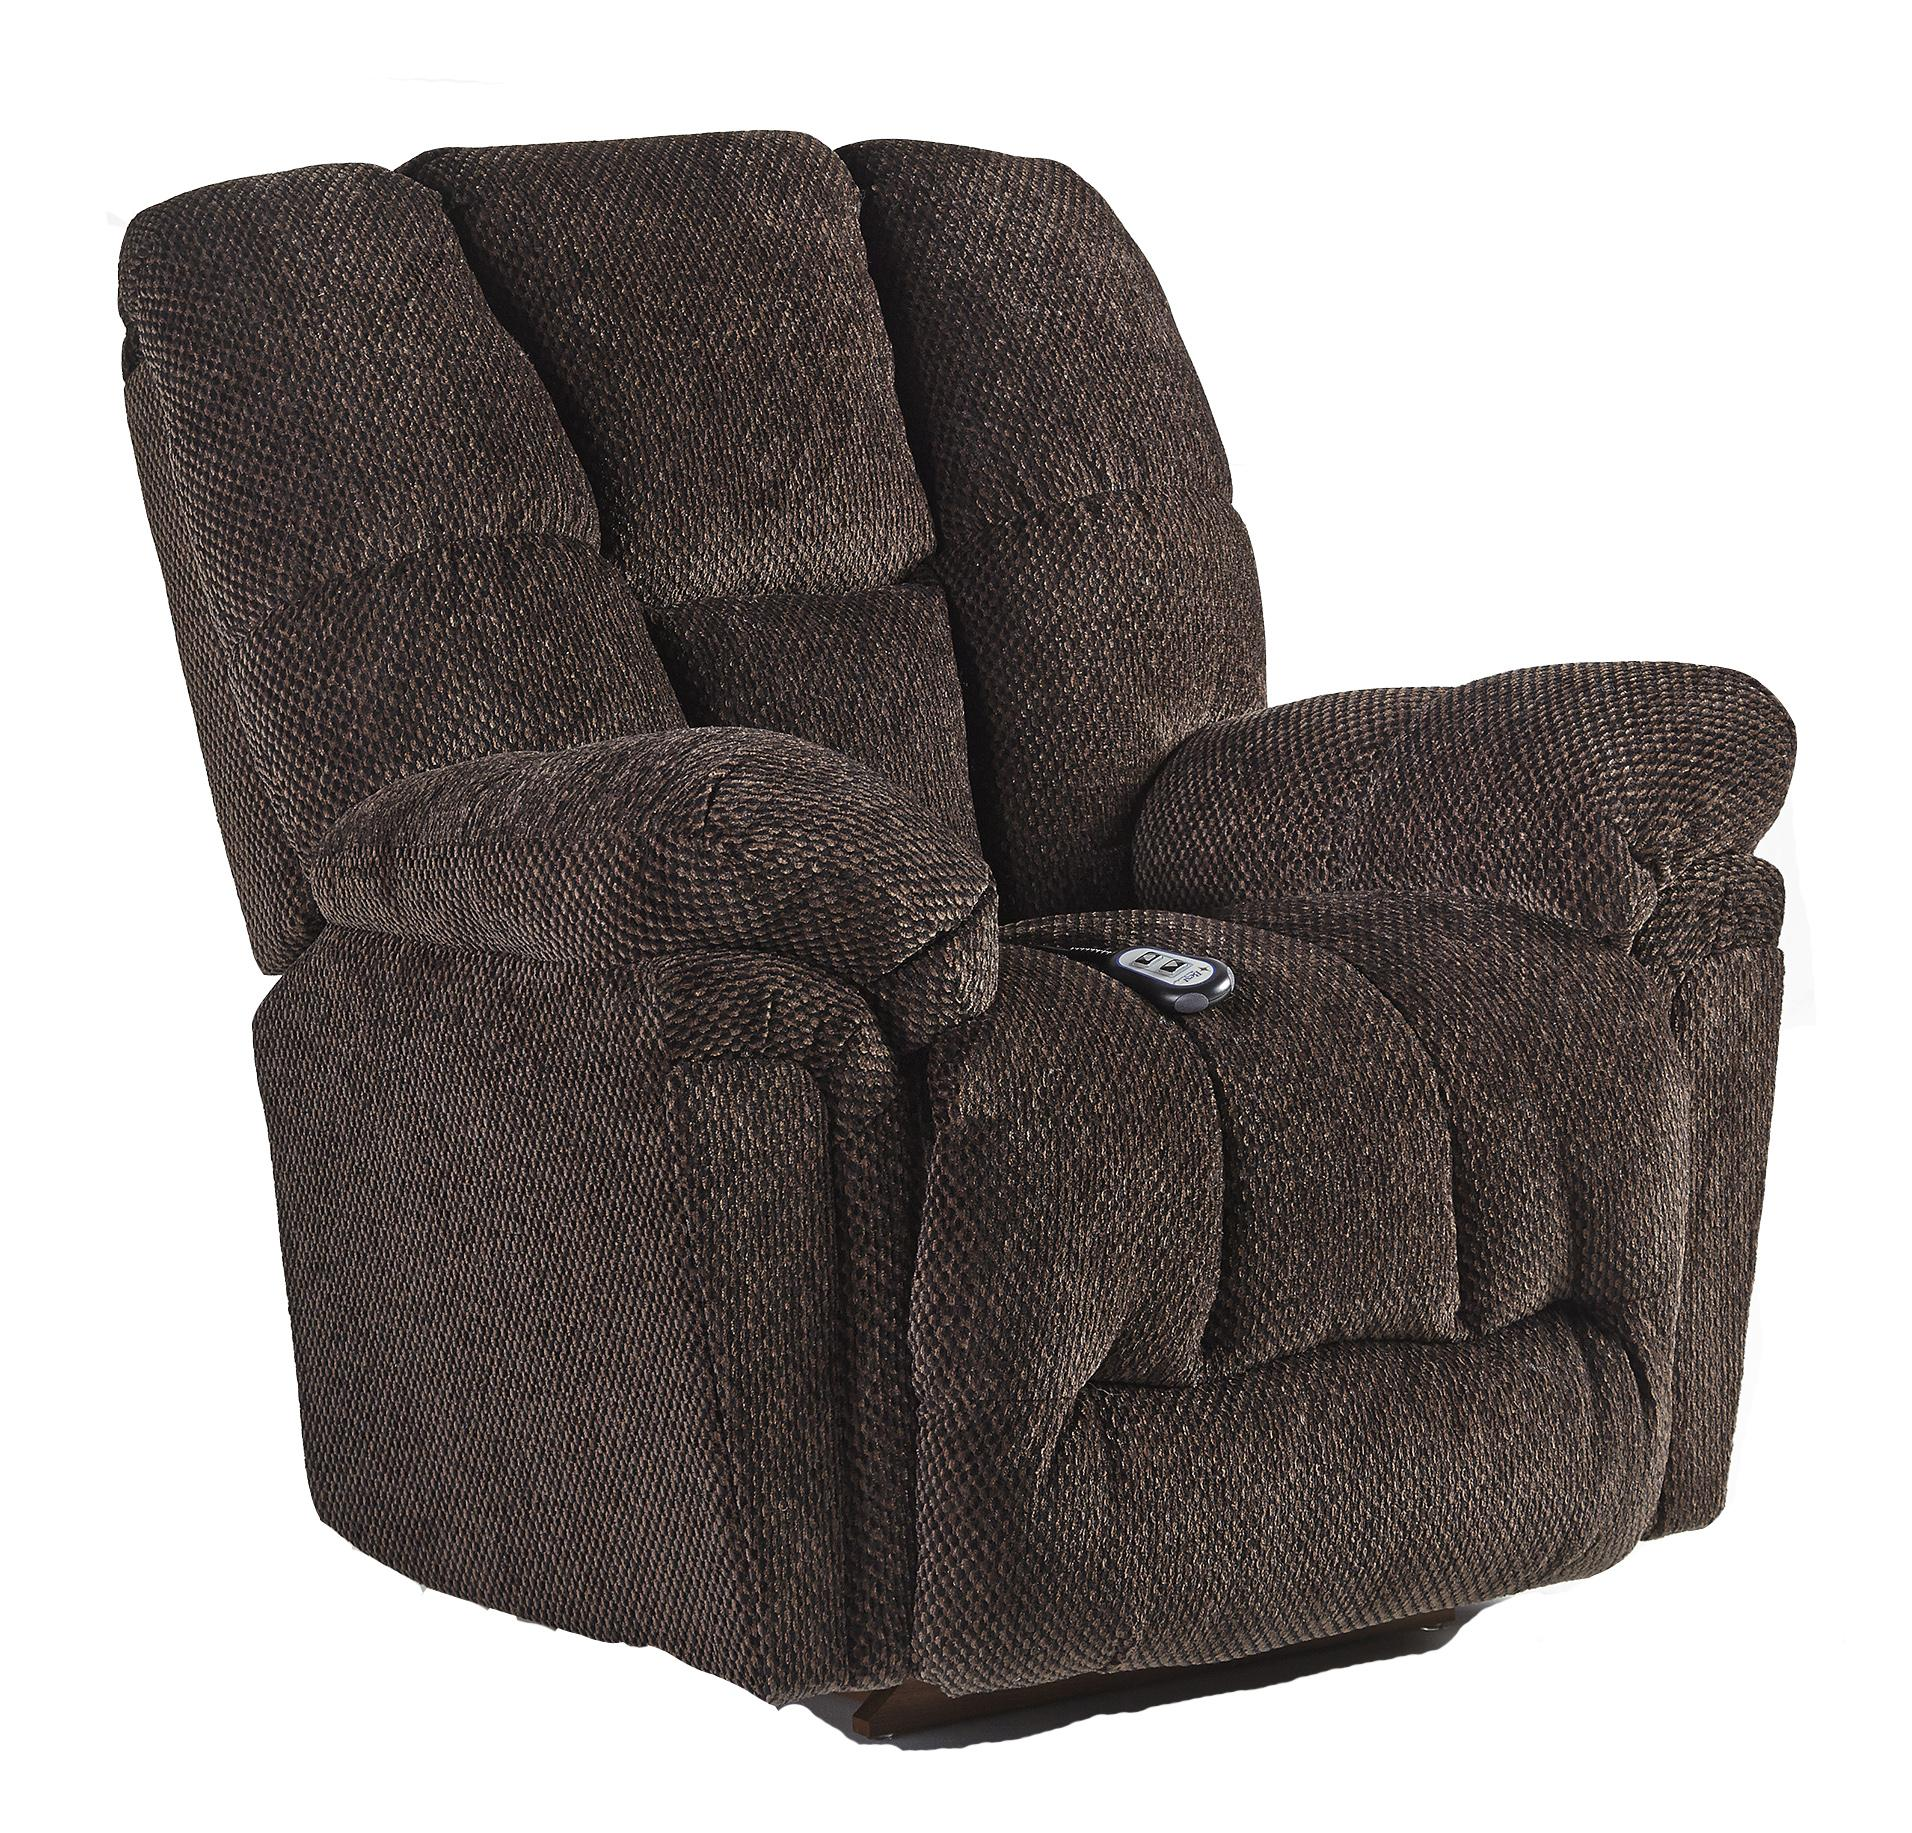 Best Home Furnishings Lucas Power Space-Saver Recliner - Item Number: 6MP54